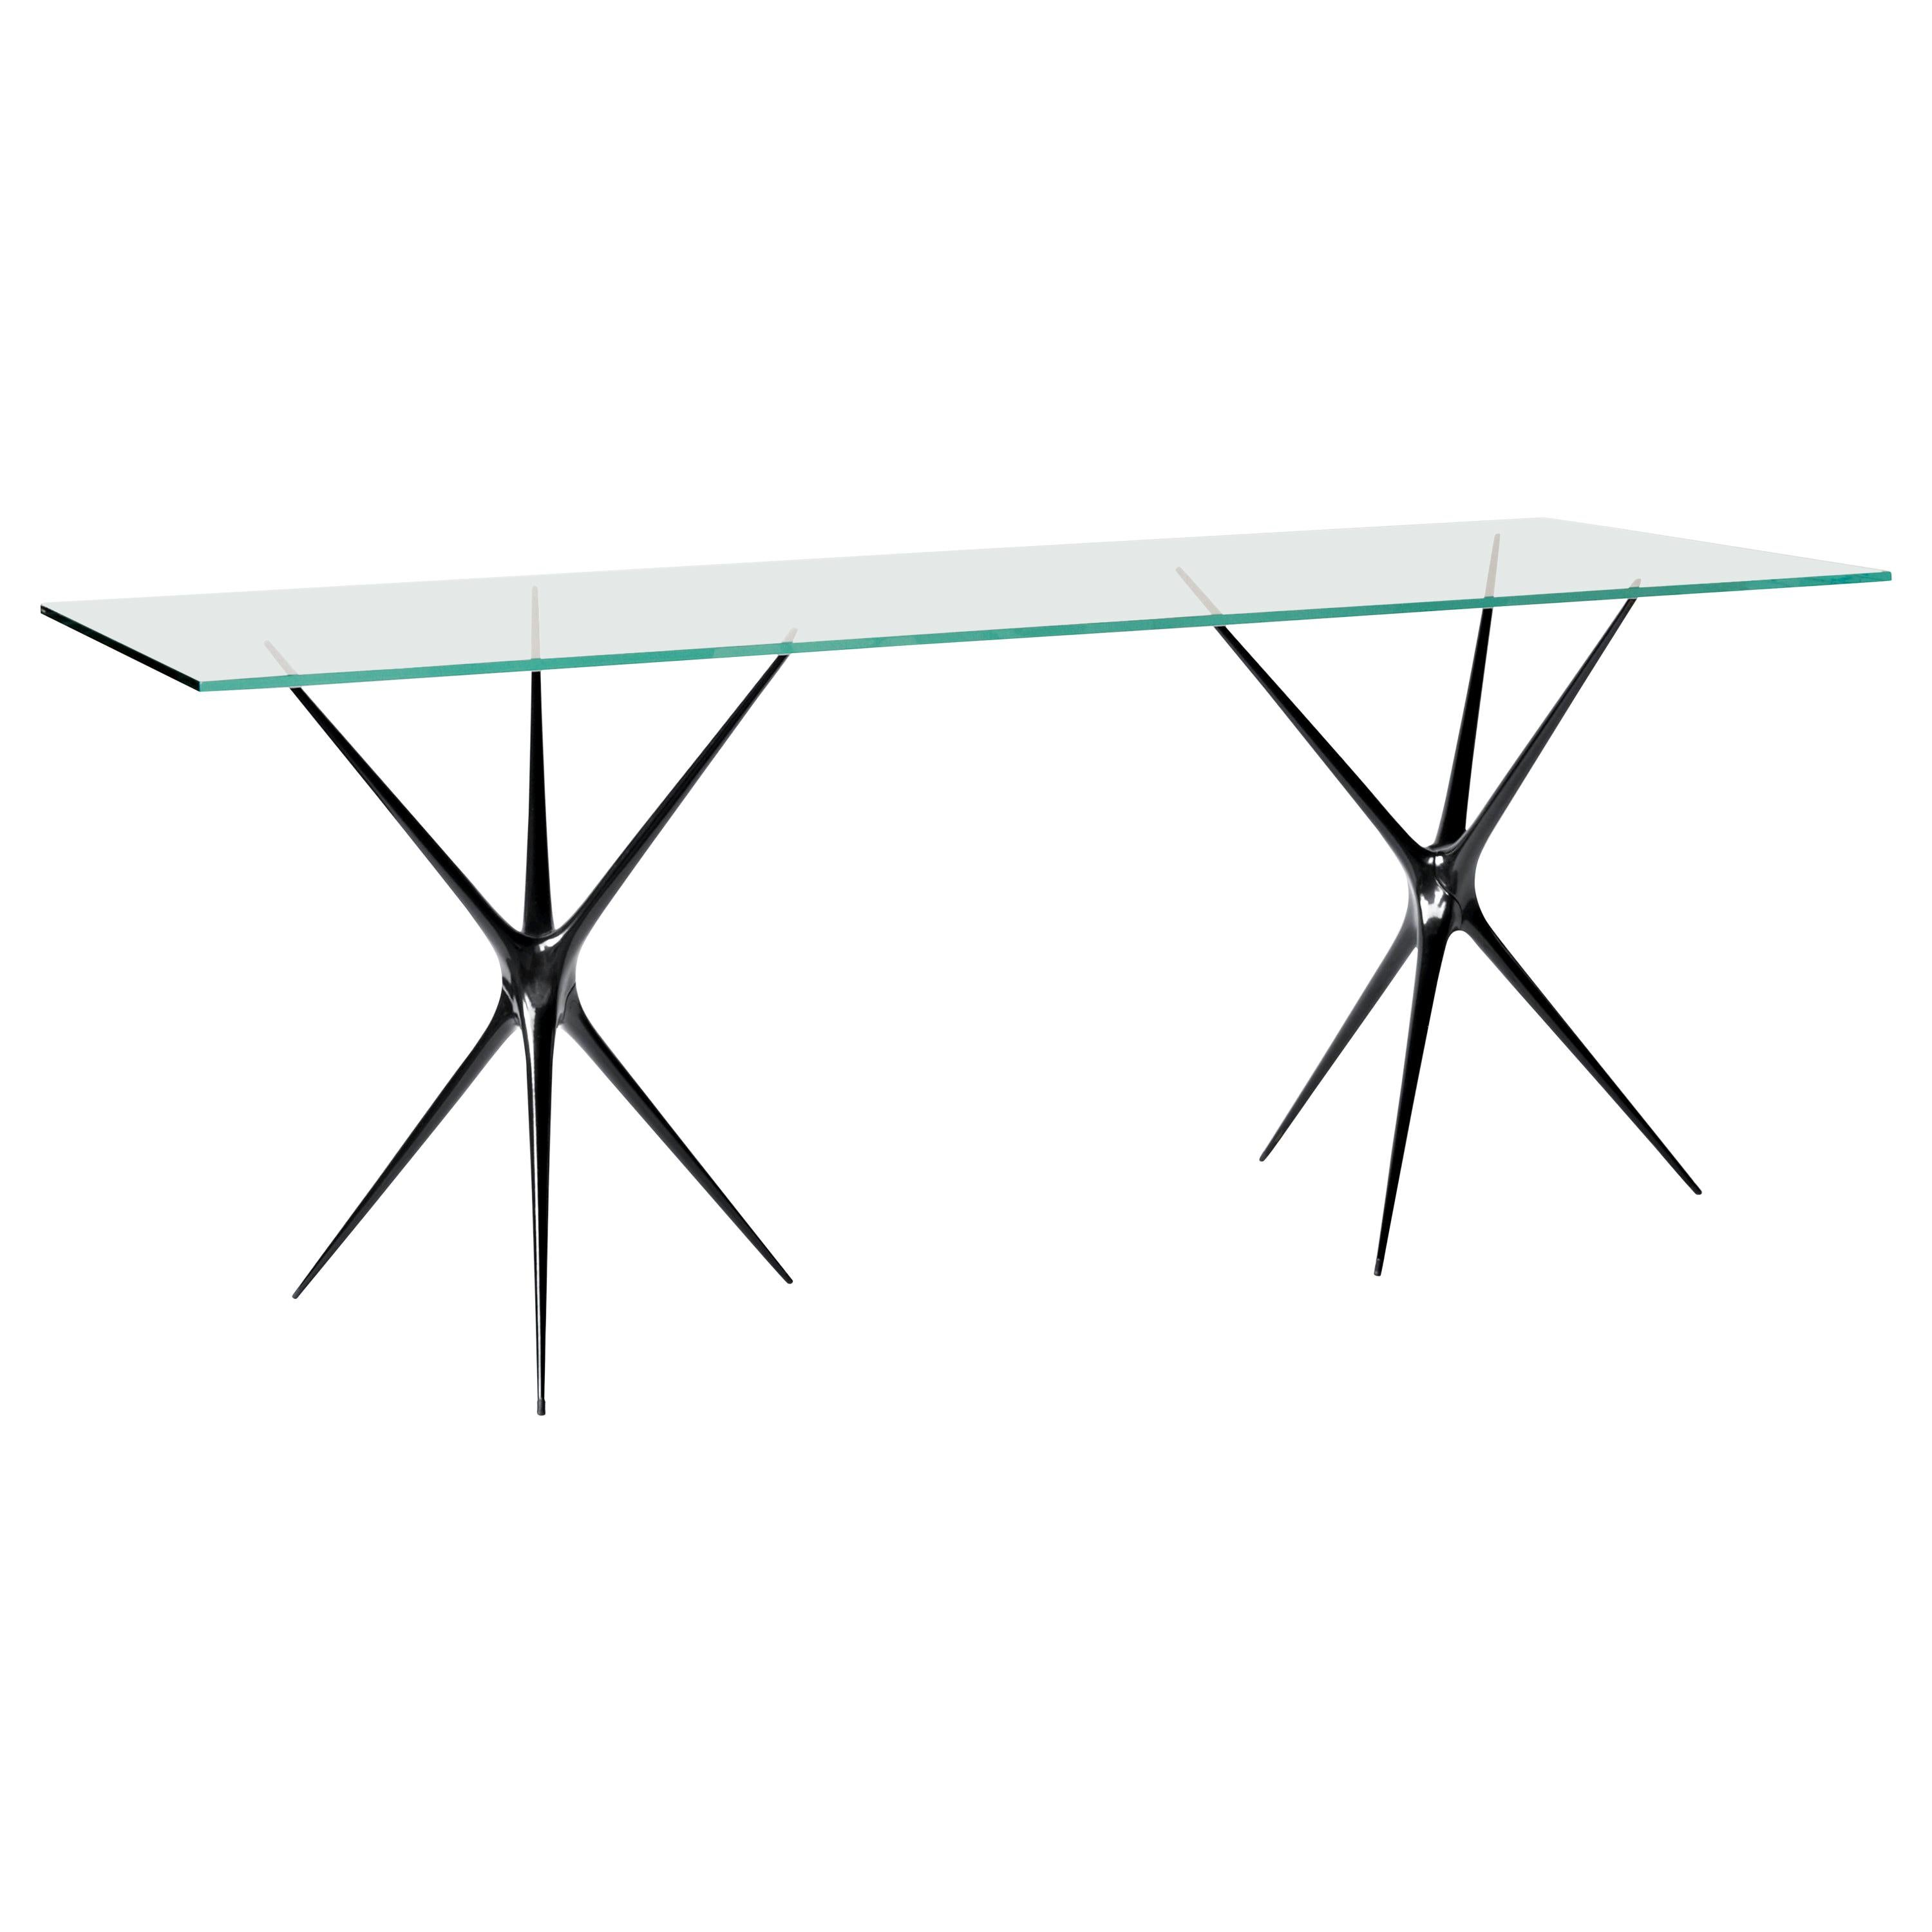 Supernova, Recycled Cast Aluminum & Glass Desk in Black by Made in Ratio